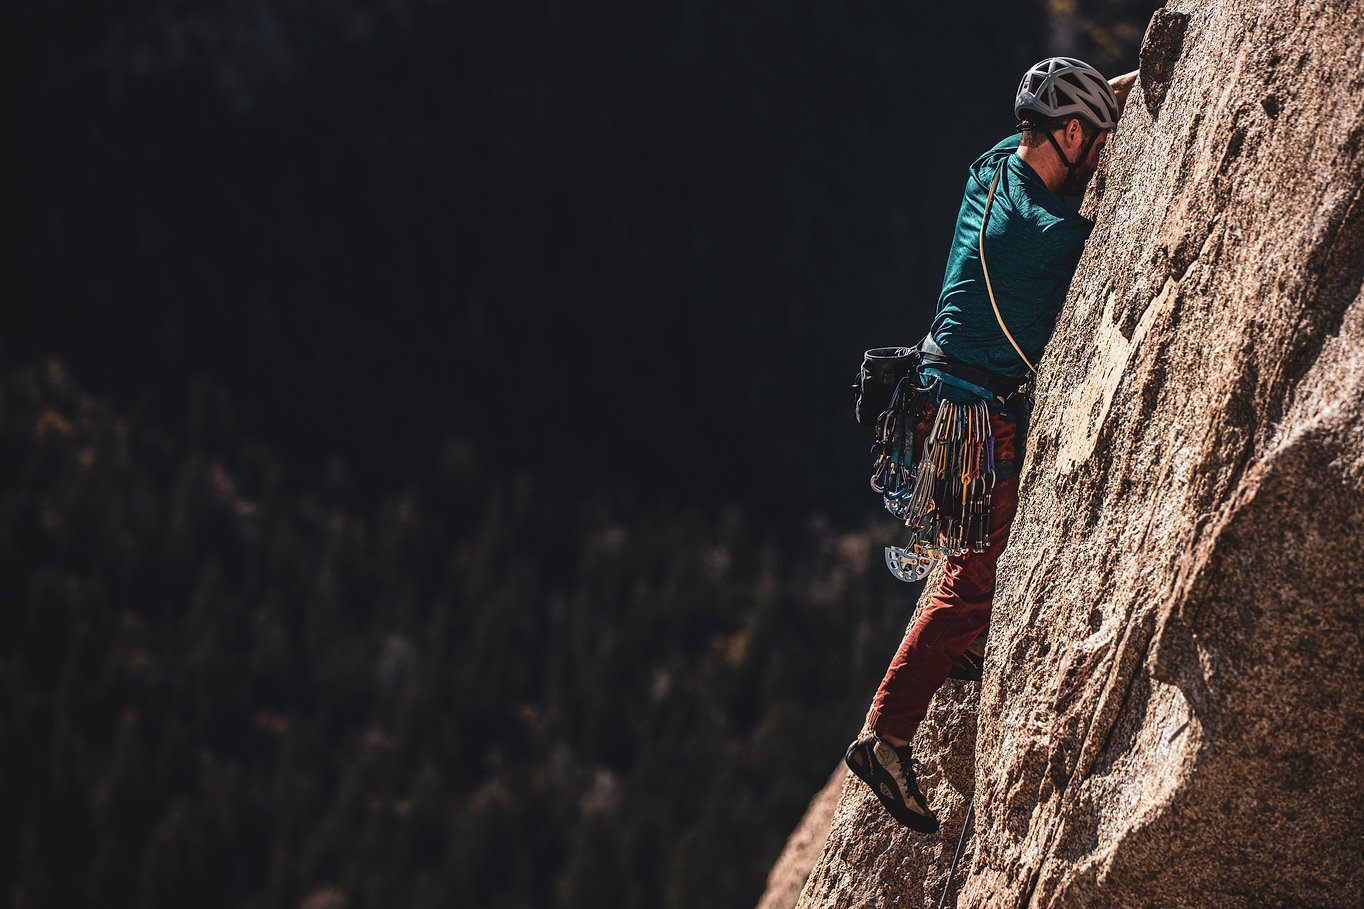 Rock Climbing Courses with Open Ascents - Mountain Activity Specialists